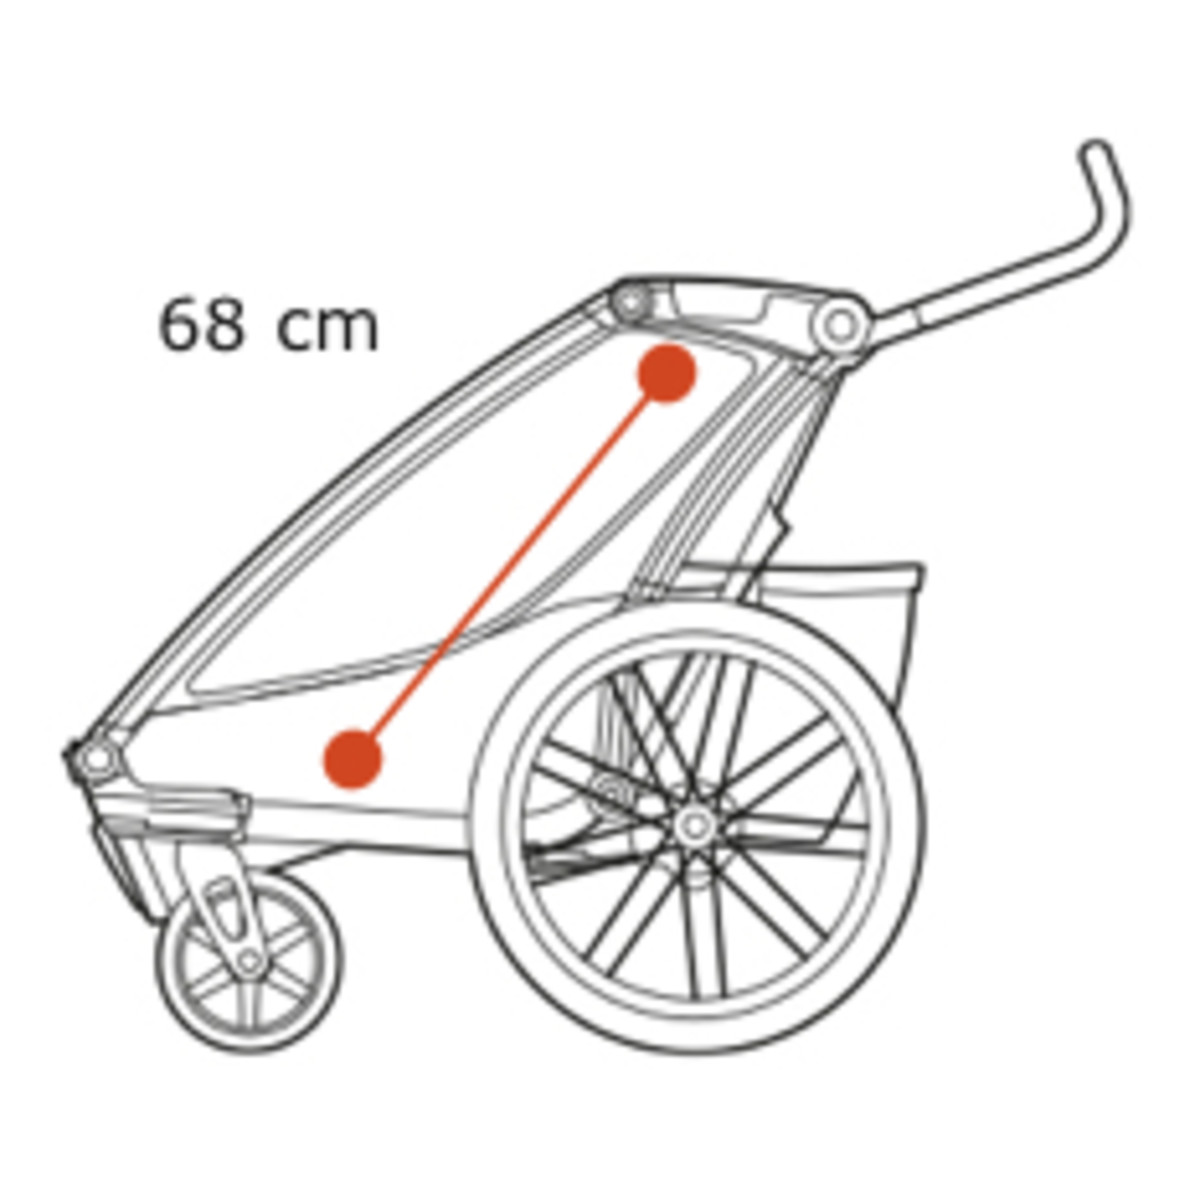 Thule Chariot Sport - Sitting height